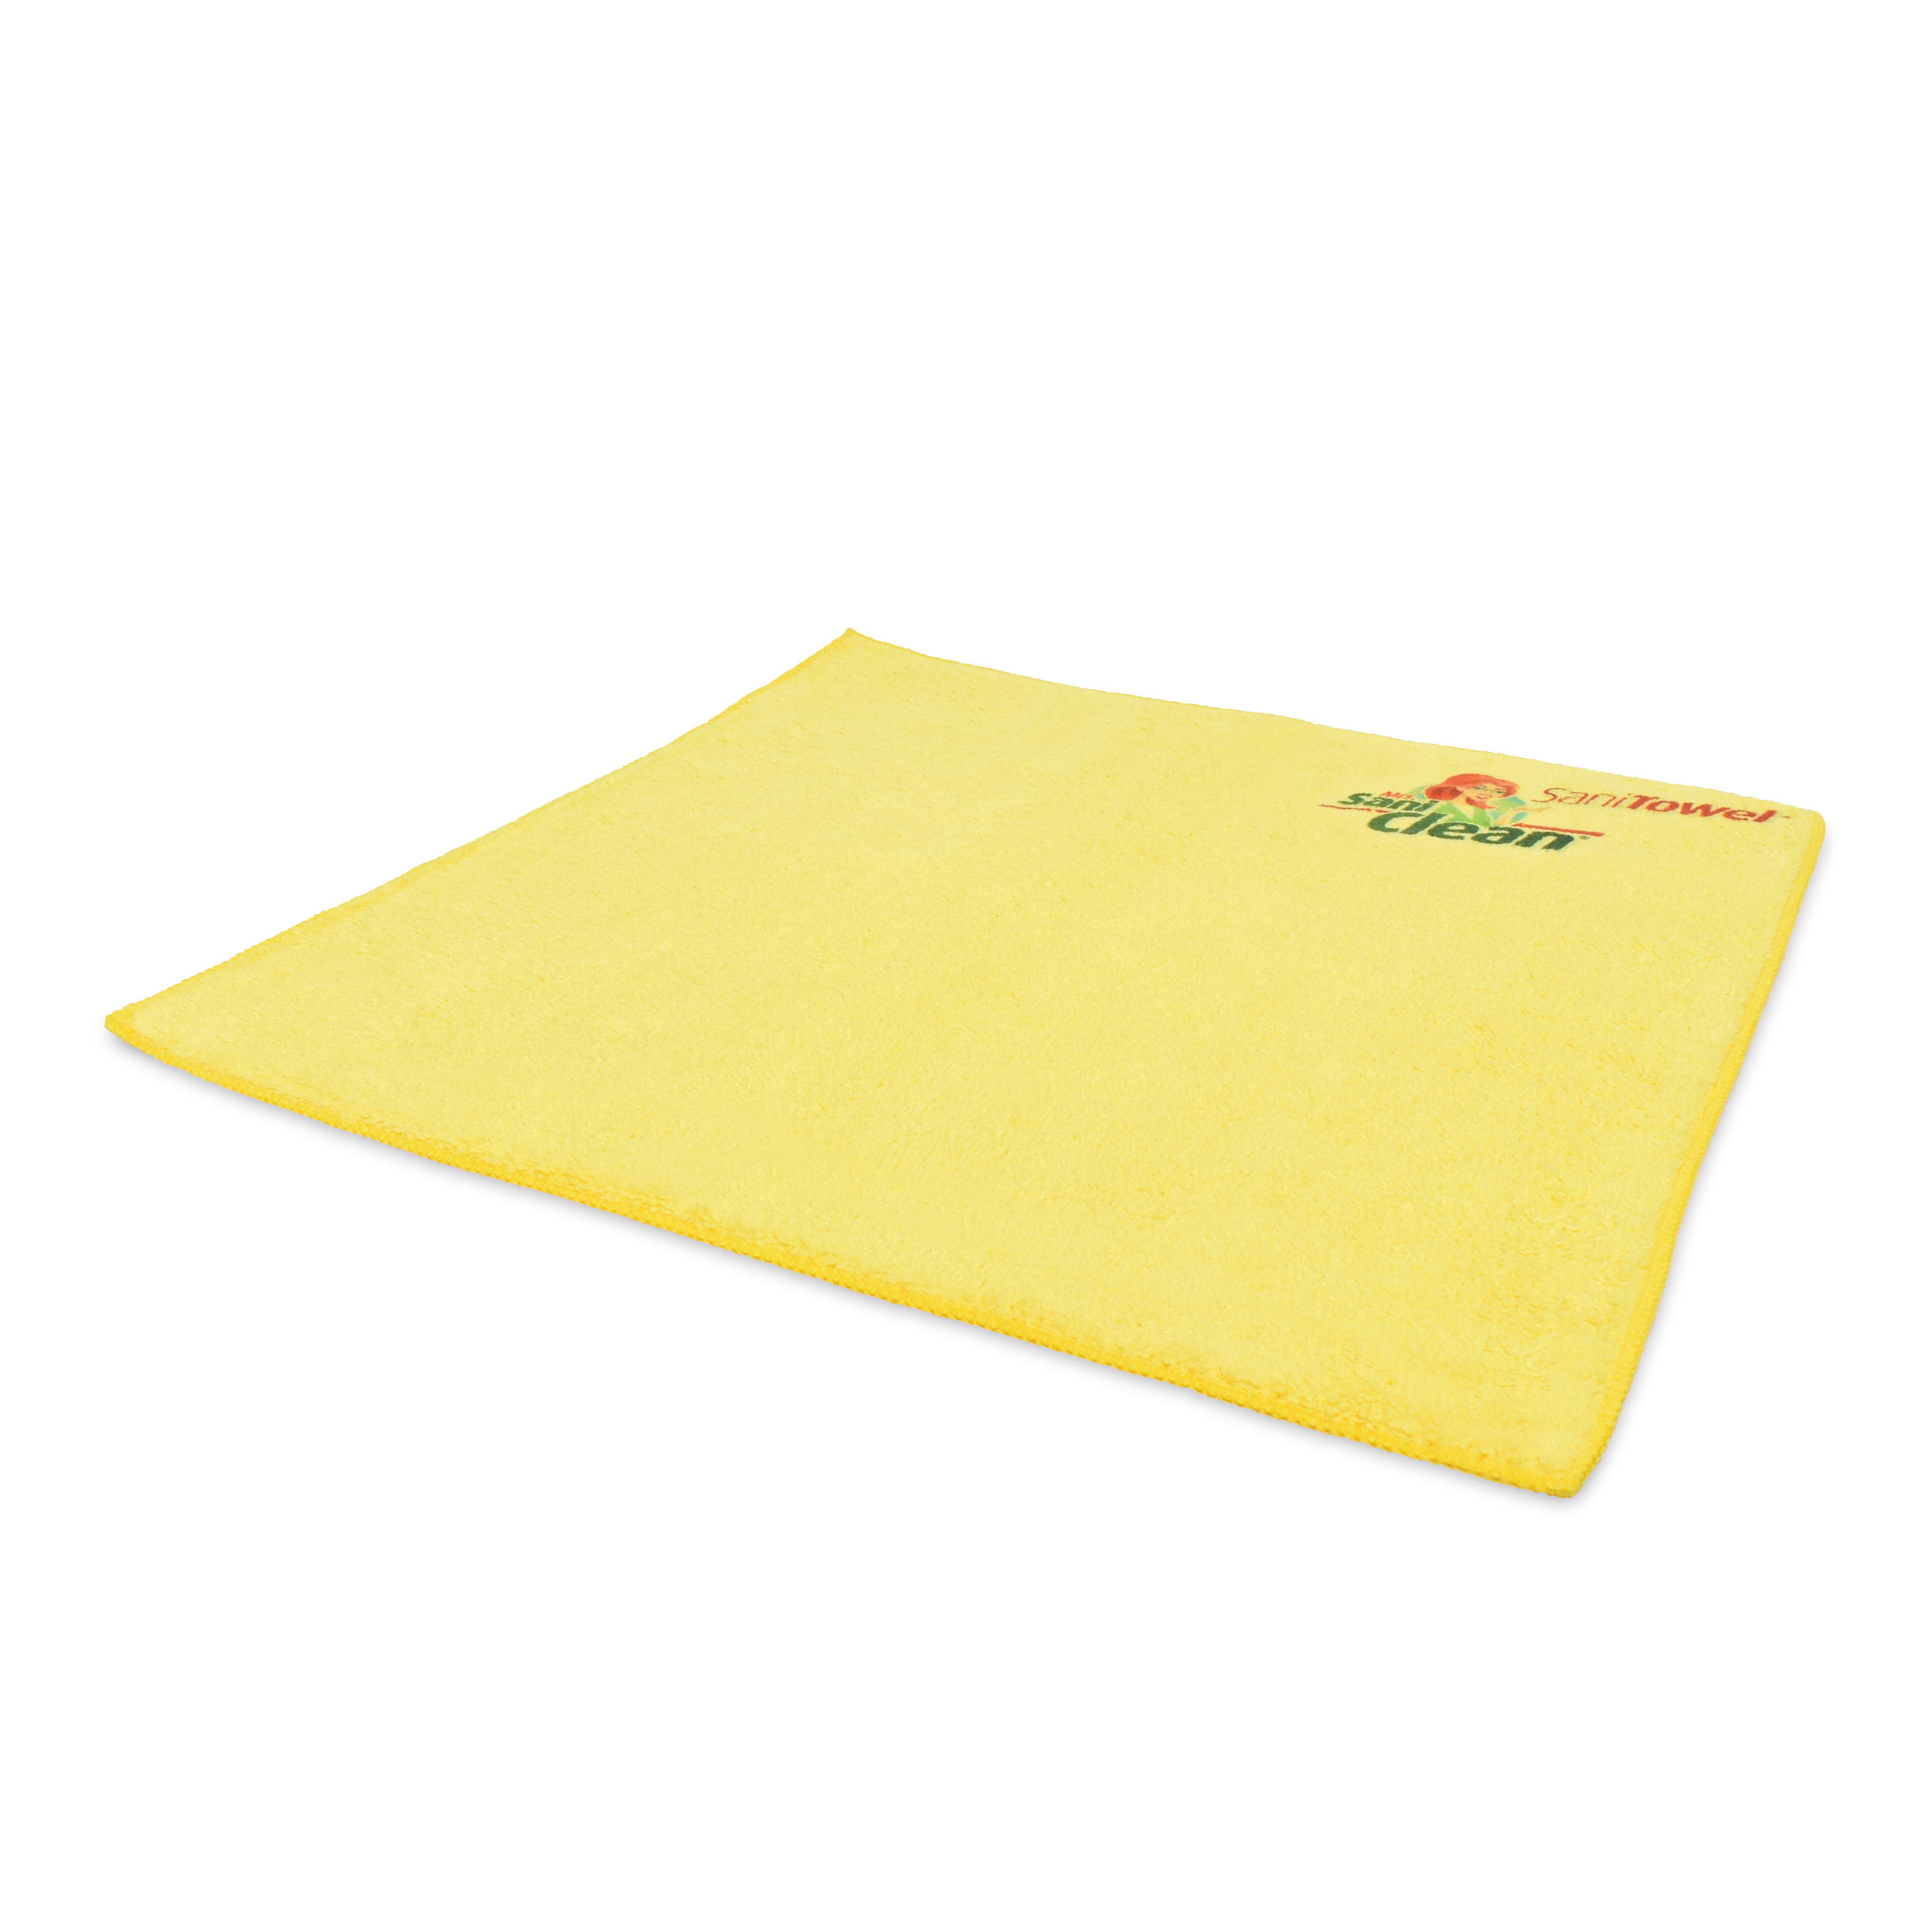 """SaniTowel for Multi-Surfaces - Mrs. SaniClean's SaniTowel for Multi-Surfaces is a 16""""x16"""" microfiber towel for any clean-up job. These washable, re-usable terry-type microfiber towels are made up of hundreds of thousands of split fibers that allow the cloths to clean aggressively without being abrasive or leaving lint behind. They are safe to use on windows, smooth and coarse surfaces and even automotive finishes."""